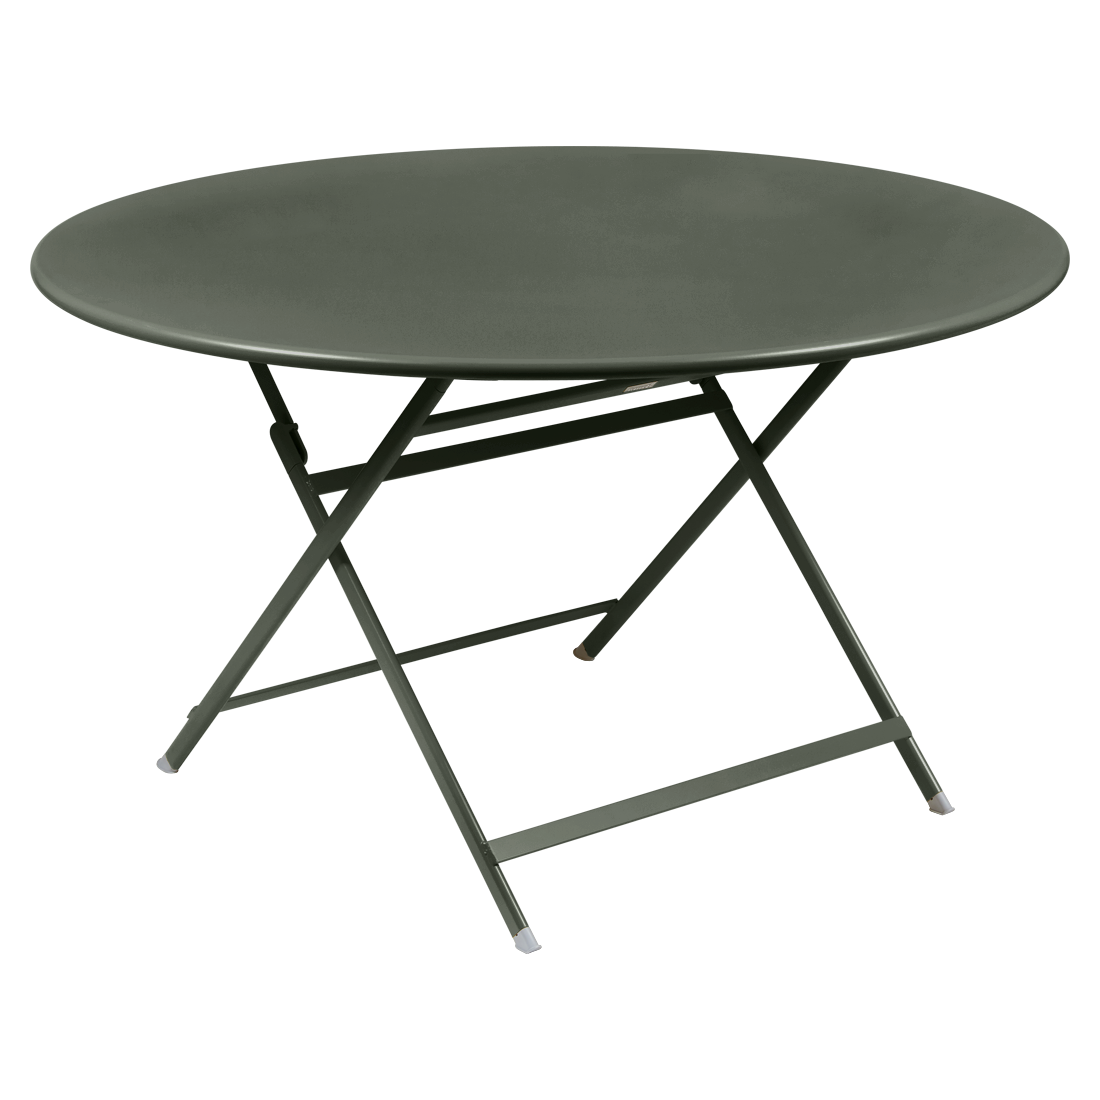 table de jardin pliante, table metal ronde, table metal 7 personnes, table de jardin verte, table metal verte